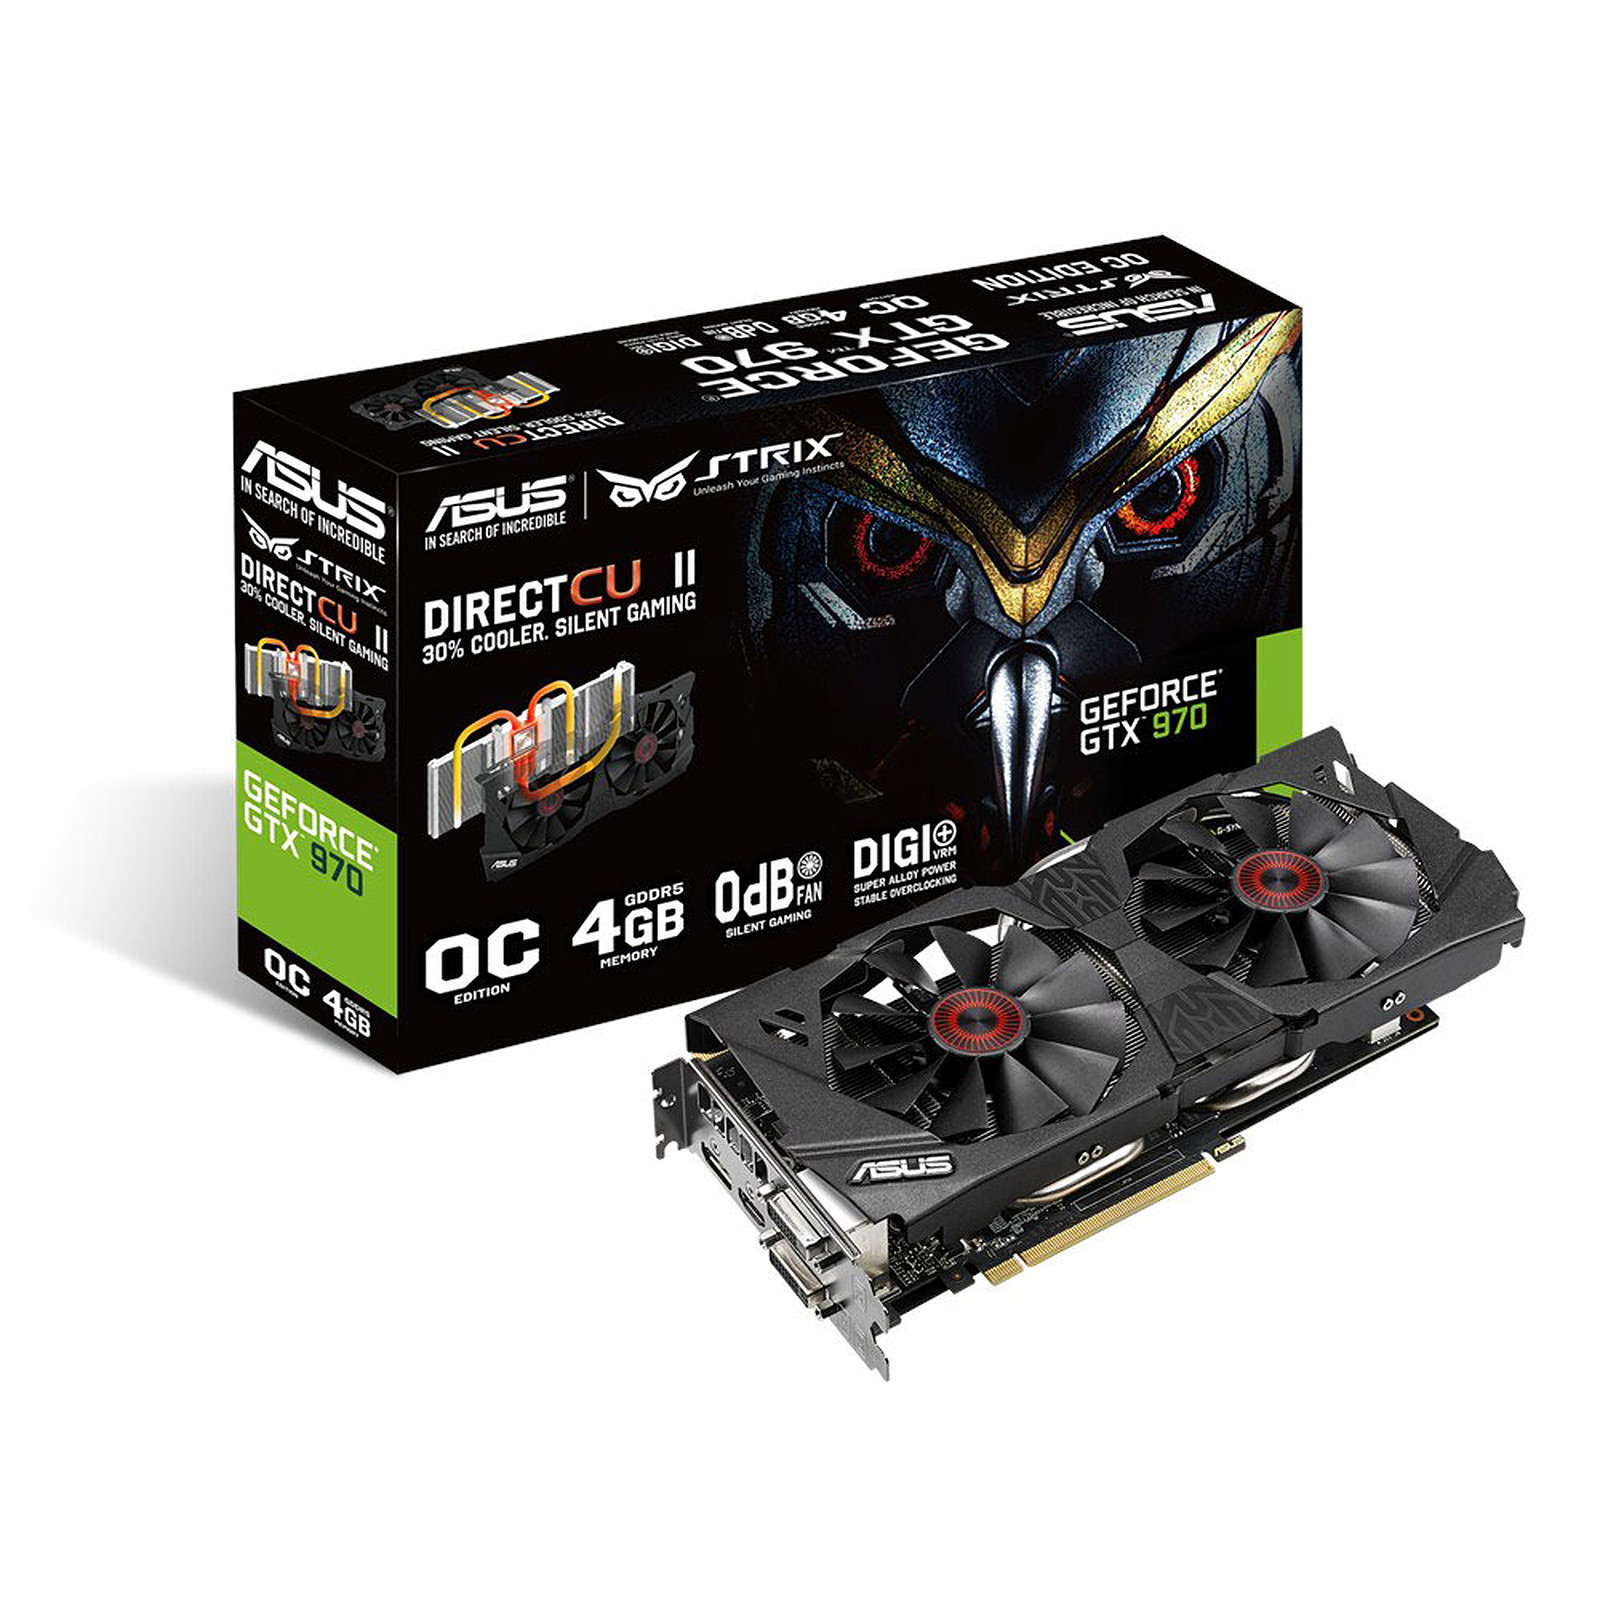 ASUS STRIX GTX970-DC2OC-4GD5 - GeForce GTX 970 4 Go